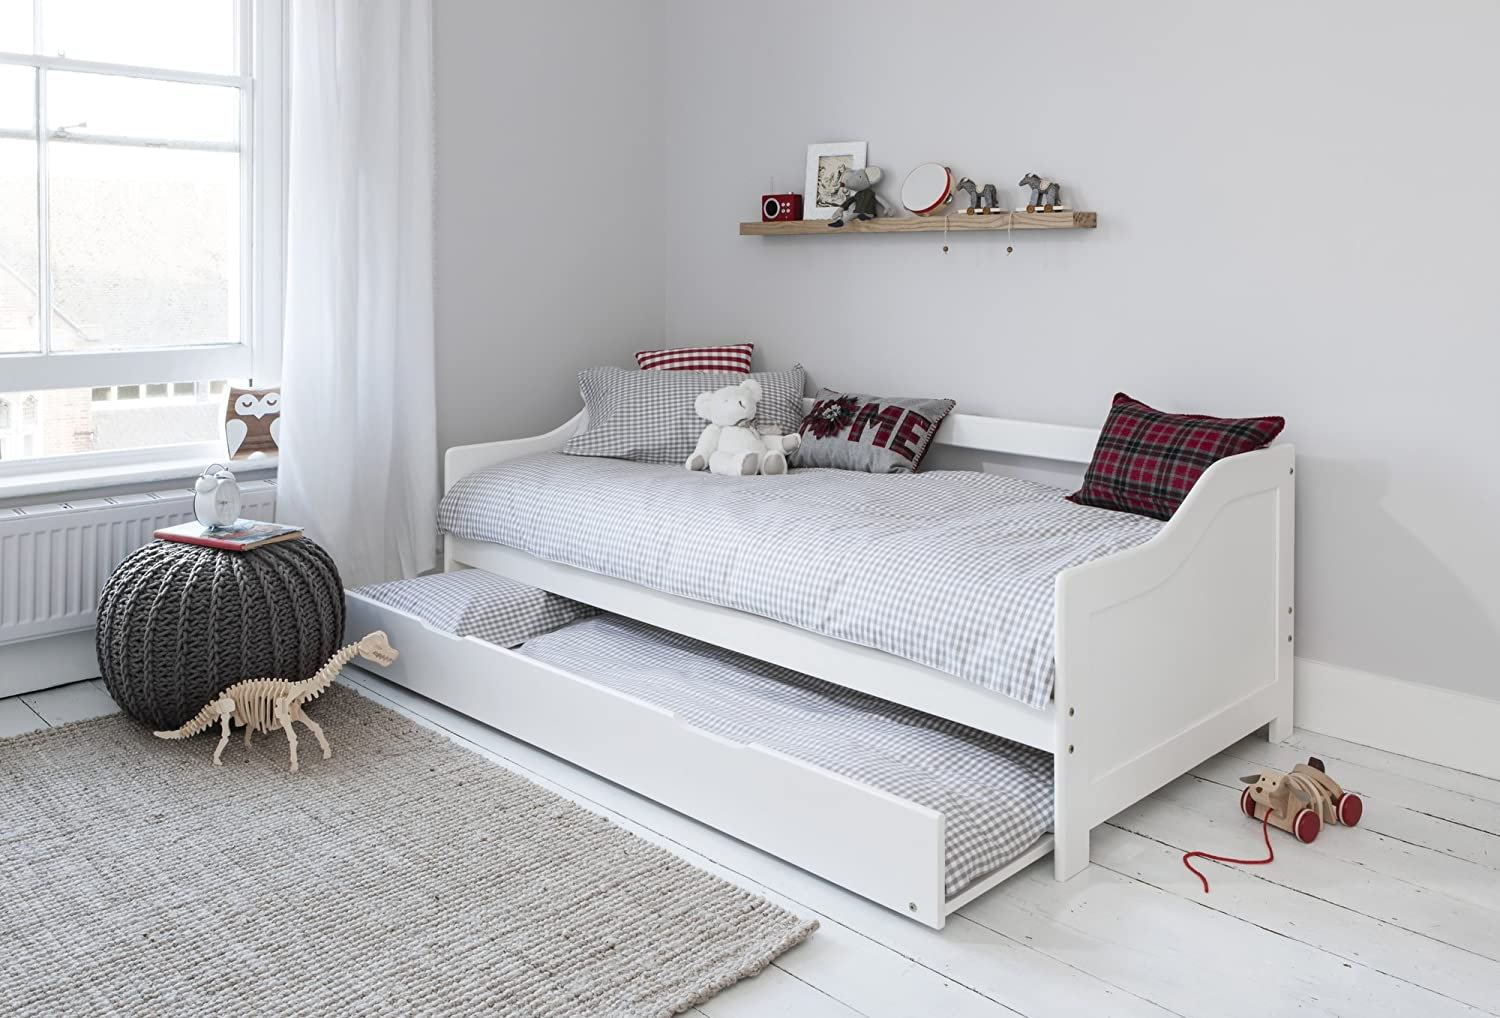 Day Bed Single Bed with Underbed In White 2 beds in 1: Amazon.co.uk:  Kitchen & Home